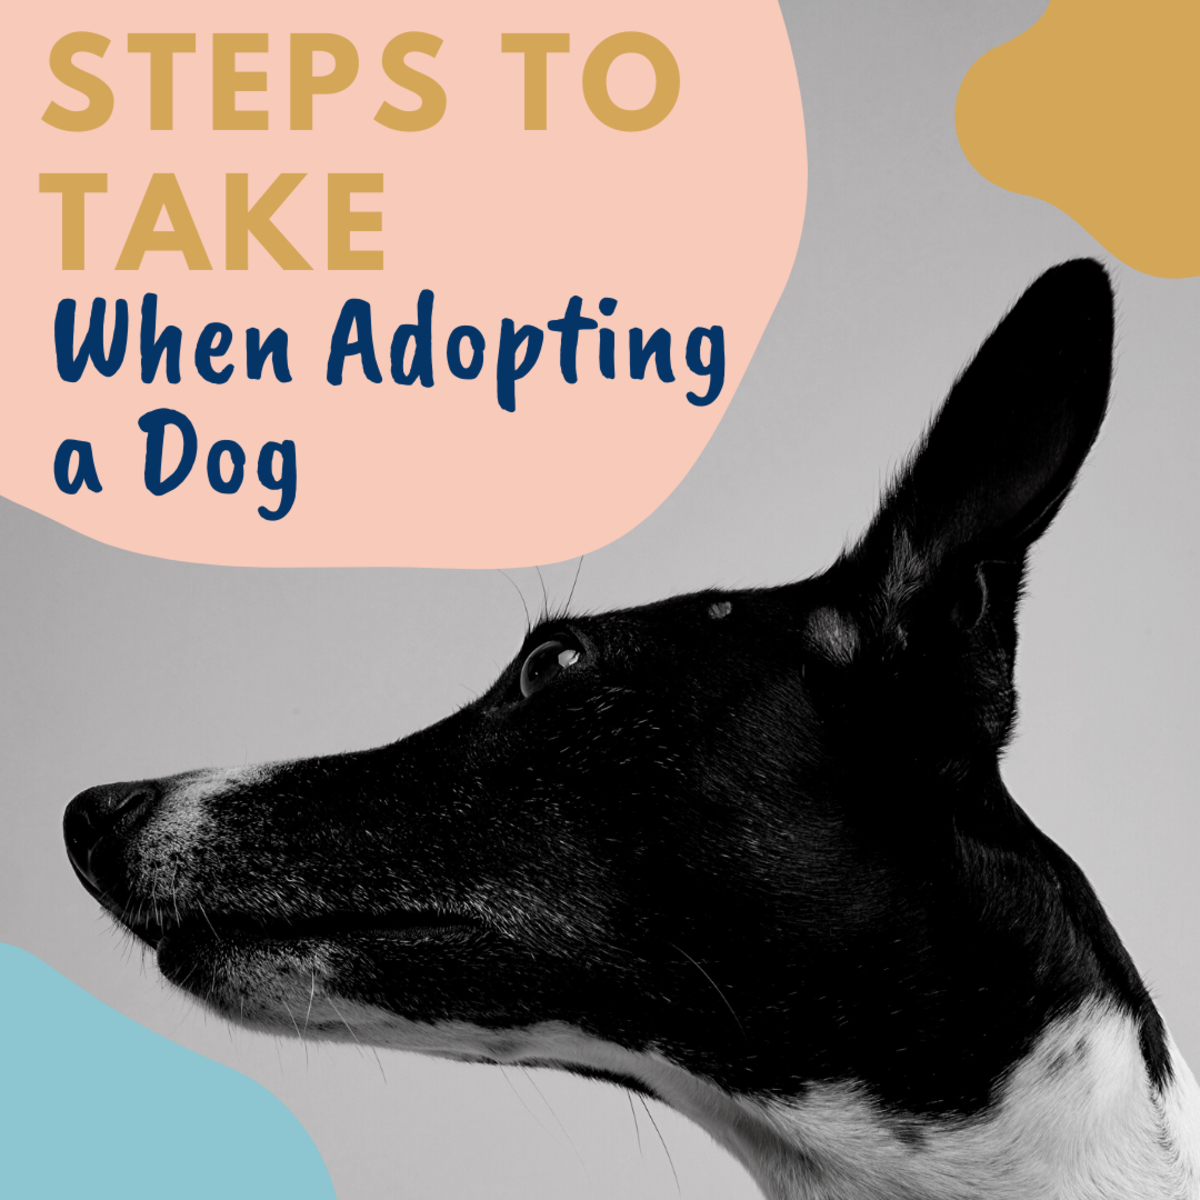 Advice for Adopting a Dog